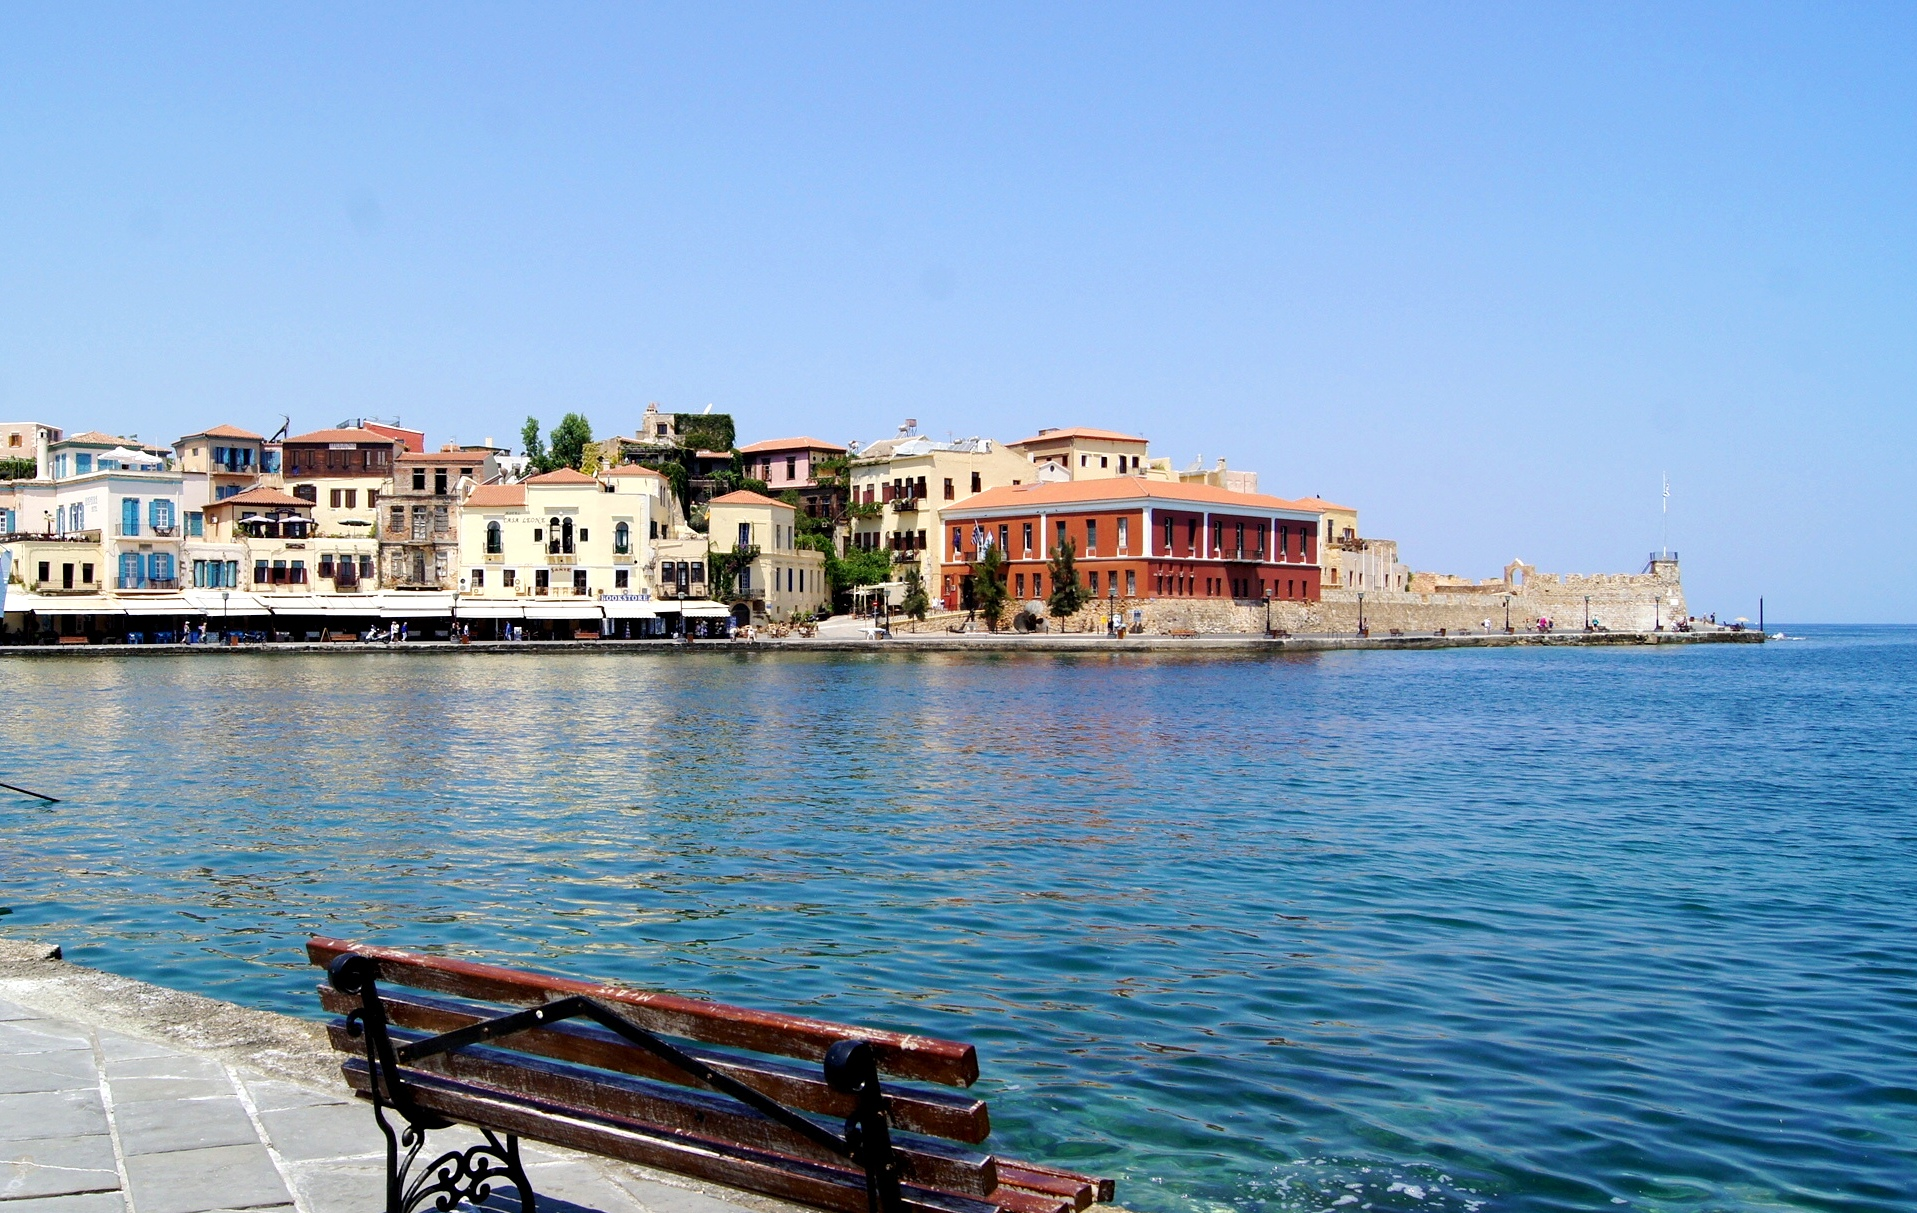 Old port of Chania